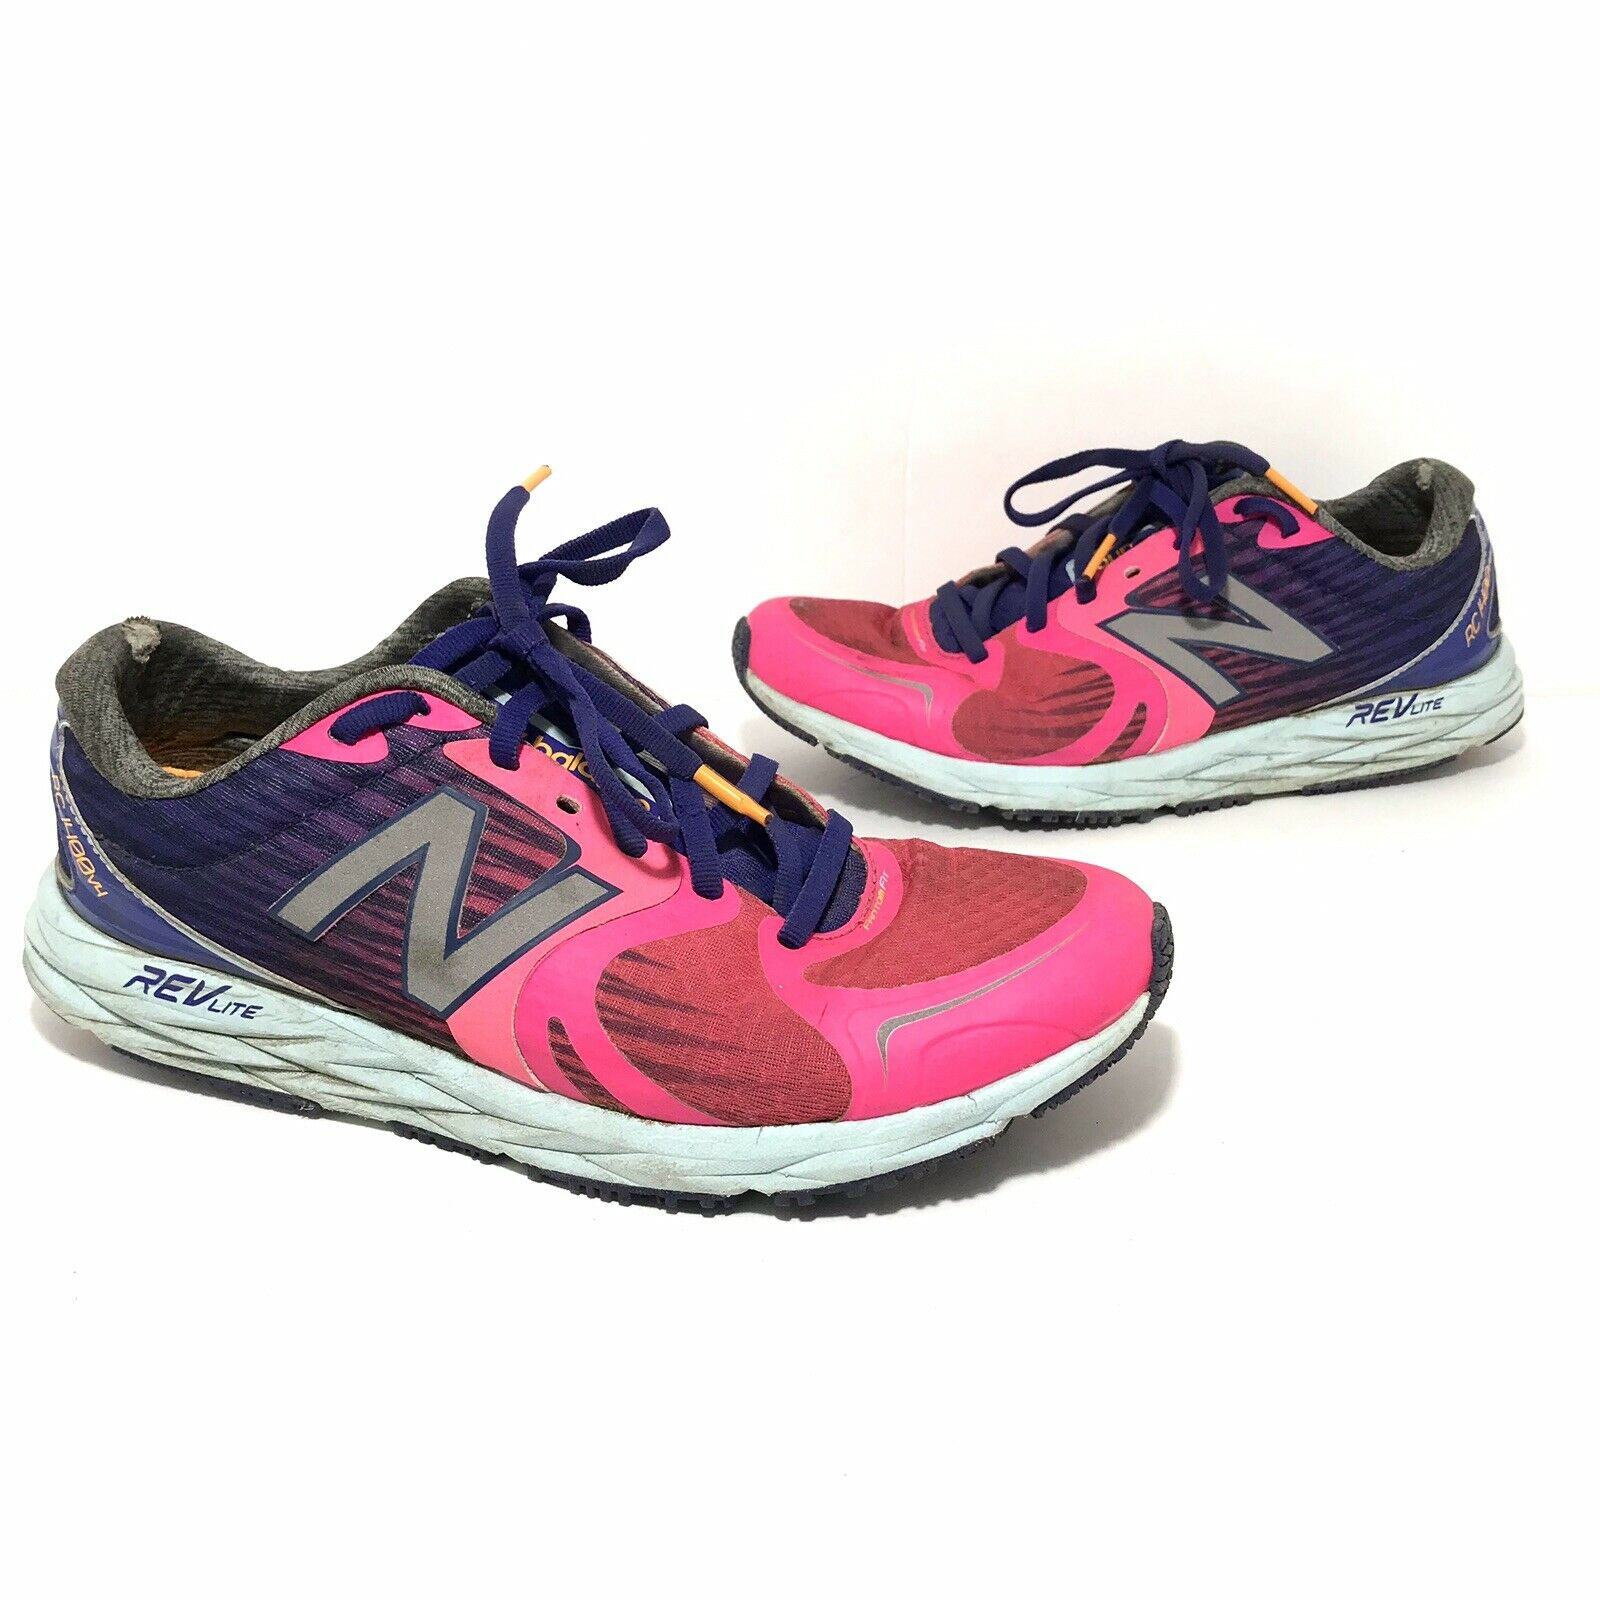 New Balance Femme RC1400 v4 Courir Chaussures De Marche Taille 9.5 rose fluo